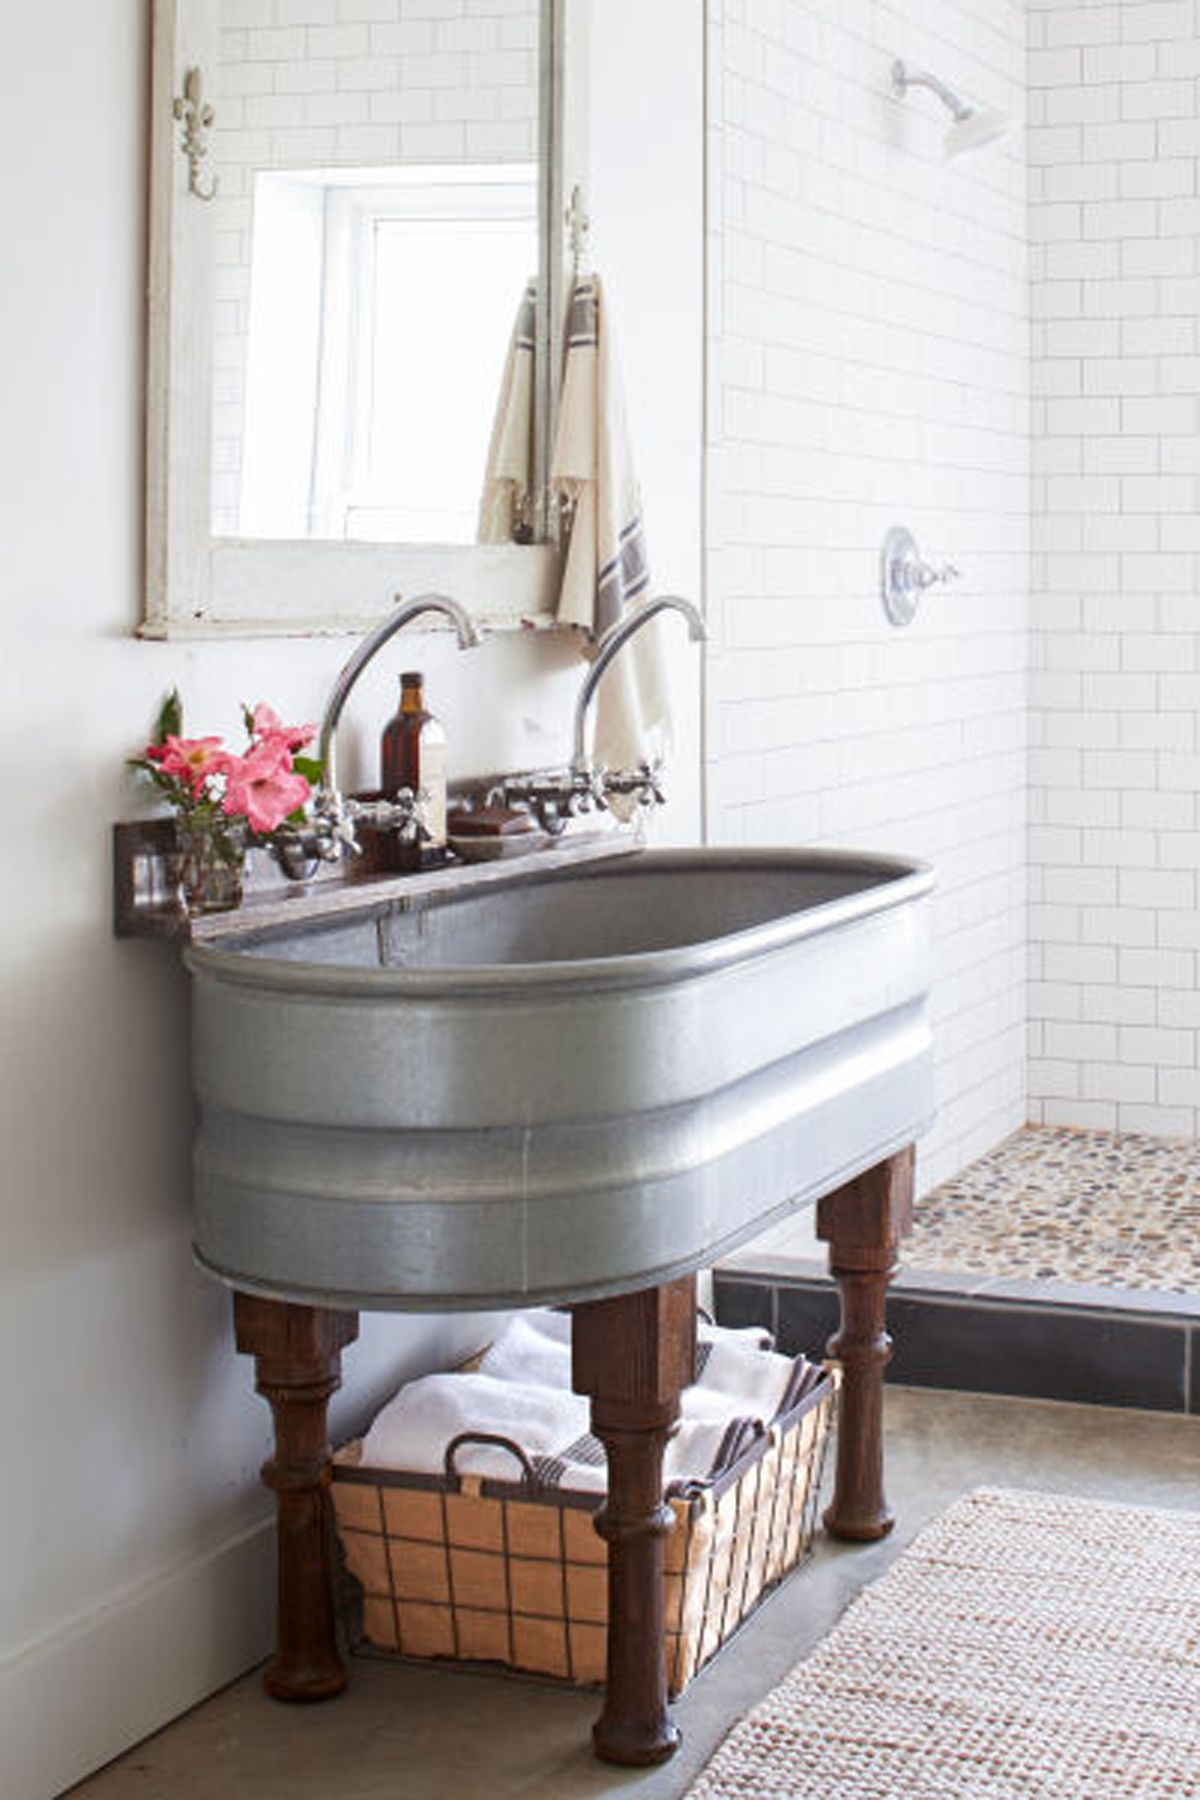 "<p>Take a cue from this homeowner and upcycle a large tub to make a double sink, or use a small tank for a teeny bathroom.</p><p><strong data-redactor-tag=""strong"" data-verified=""redactor"">See more ideas from <a href=""http://www.countryliving.com/home-design/house-tours/g2545/leipers-fork-tennessee-cabin/"" target=""_blank"" data-tracking-id=""recirc-text-link"">this rustic cabin in Tennessee</a>.</strong></p>"